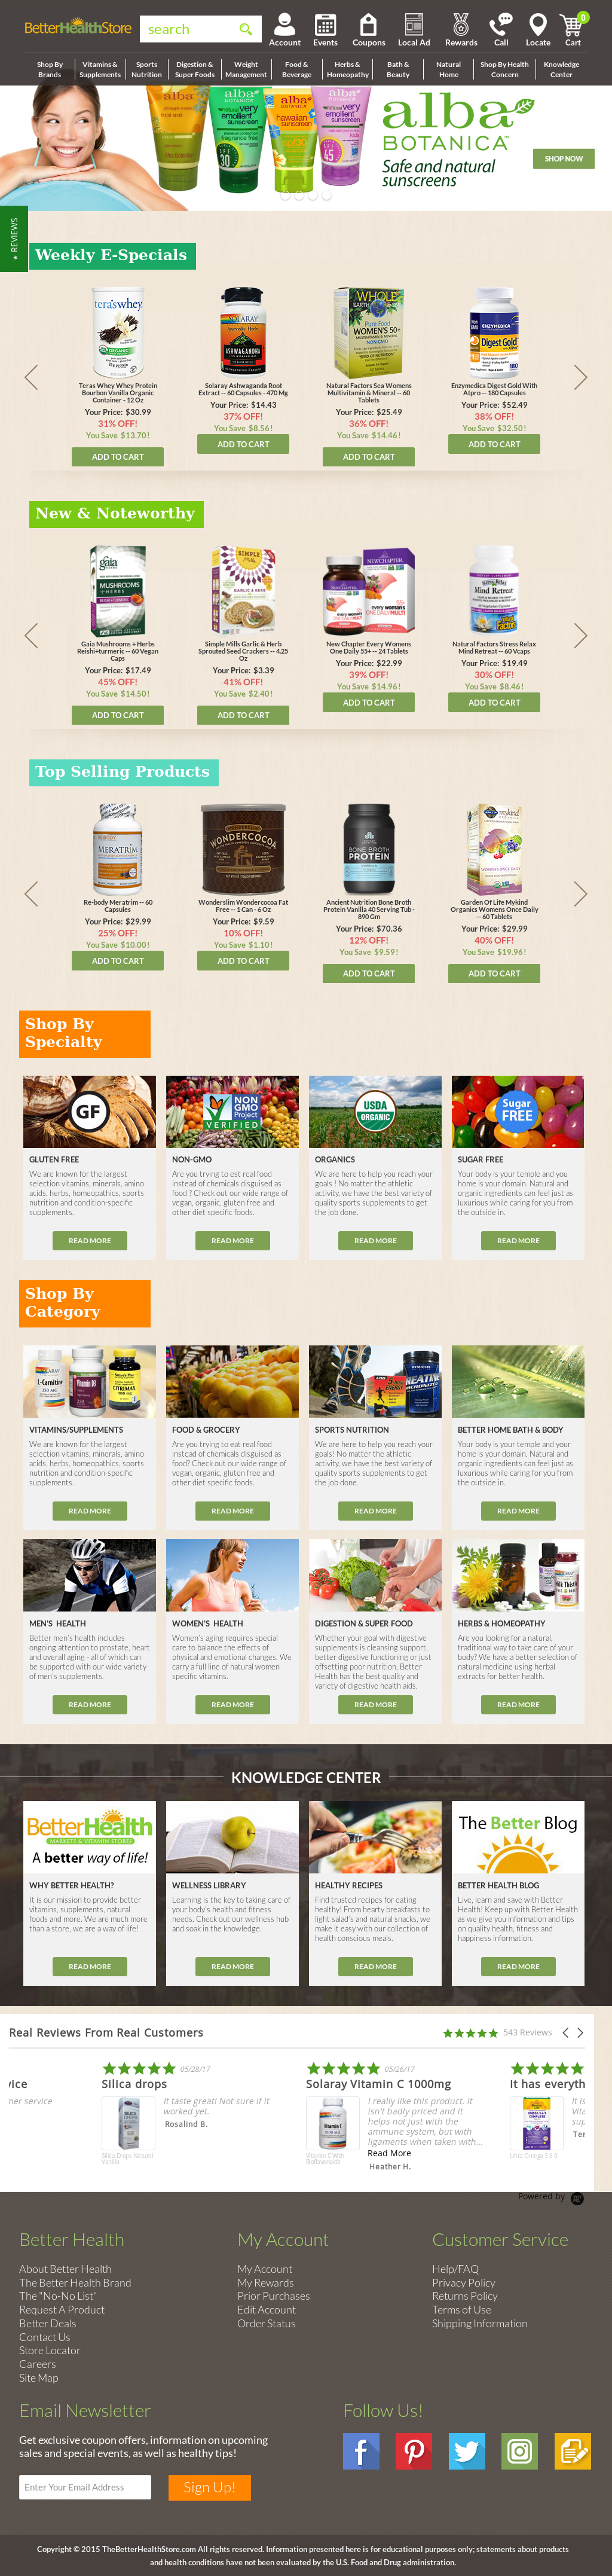 Thebetterhealthstore Competitors, Revenue and Employees